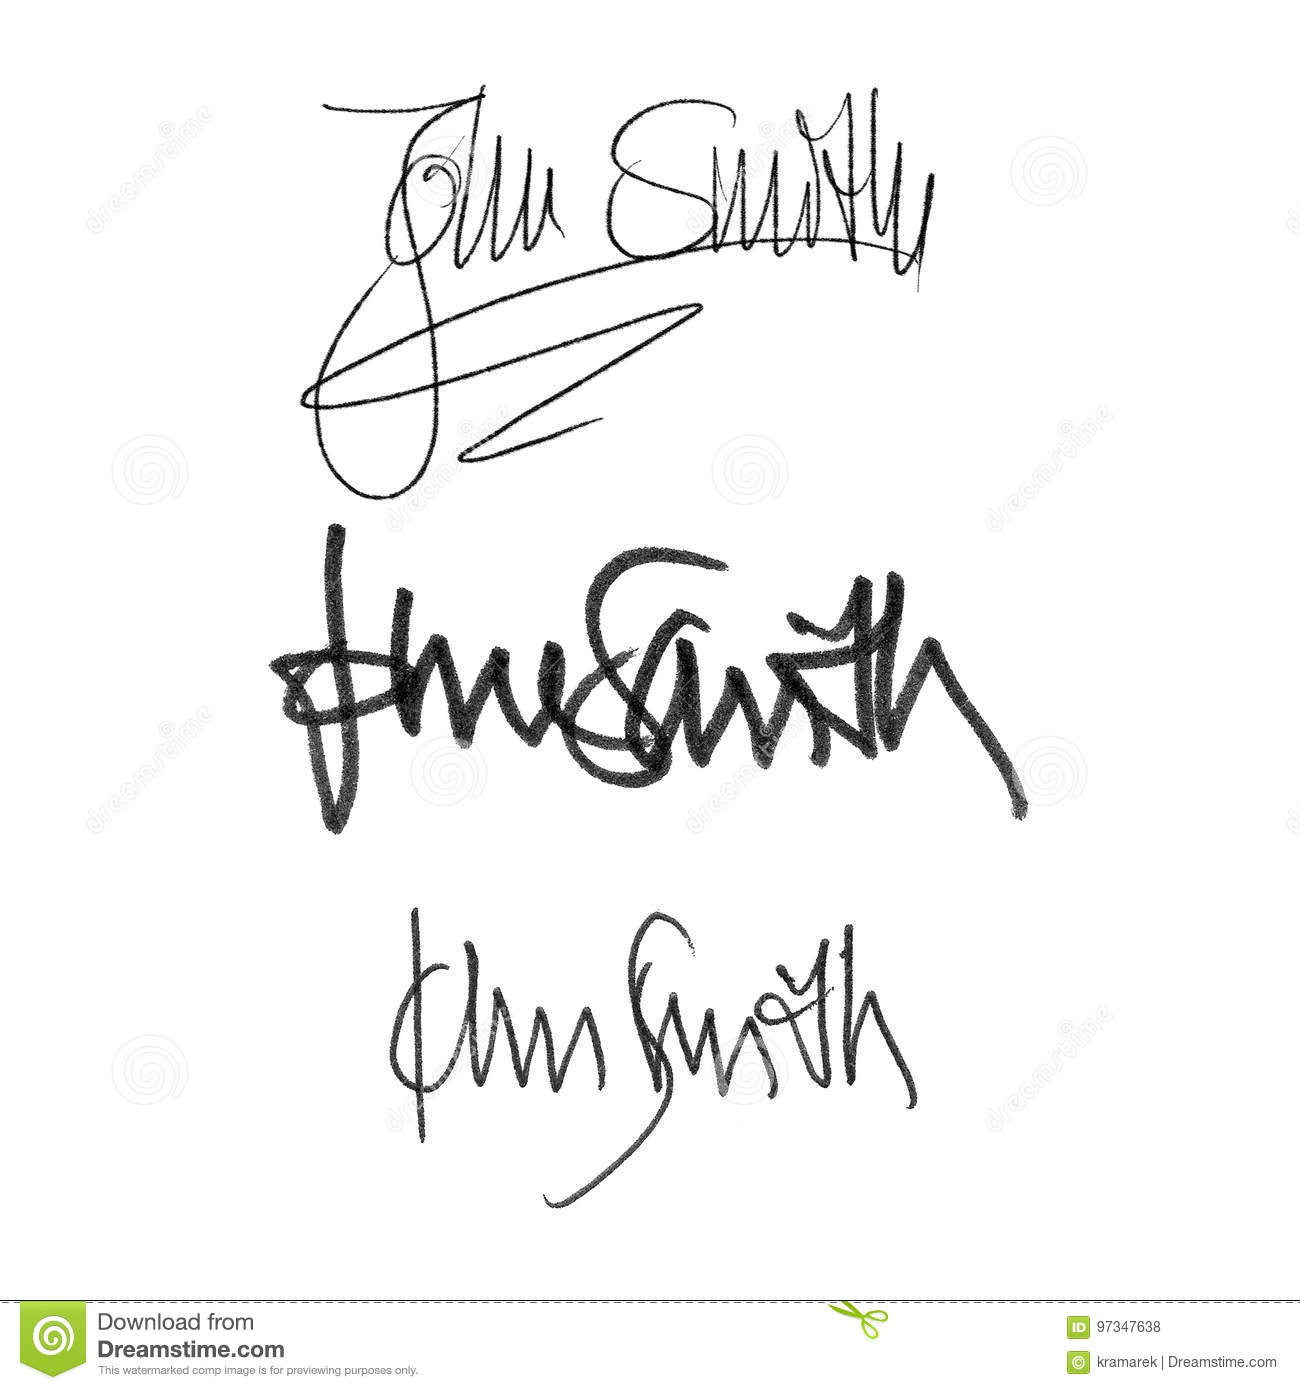 Download Calligraphy Signature John Smith Handwritten Set Of Different Styles And Pens Stock Illustration